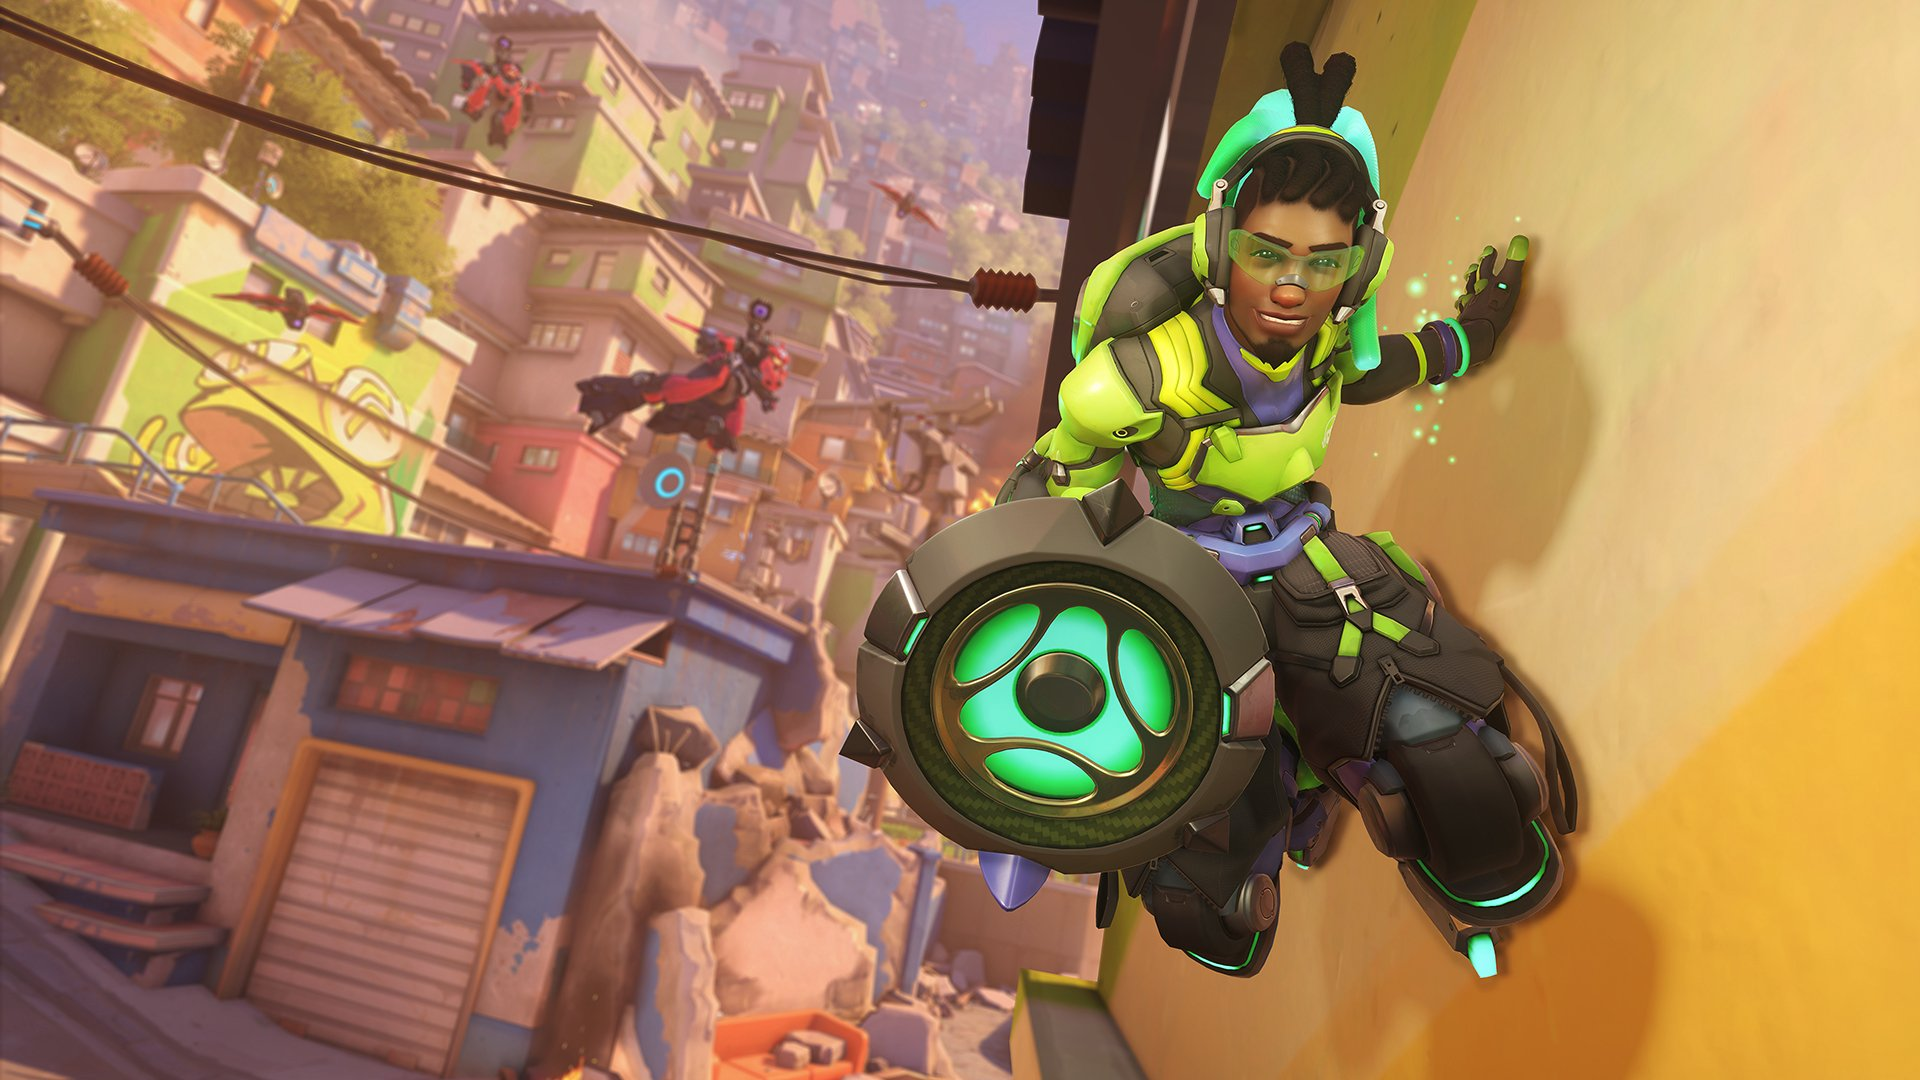 Leaked Christmas Skins Overwatch 2021 Overwatch 2 Release Date Is Very Likely To Be During Blizzcon According To Leak Gamesradar